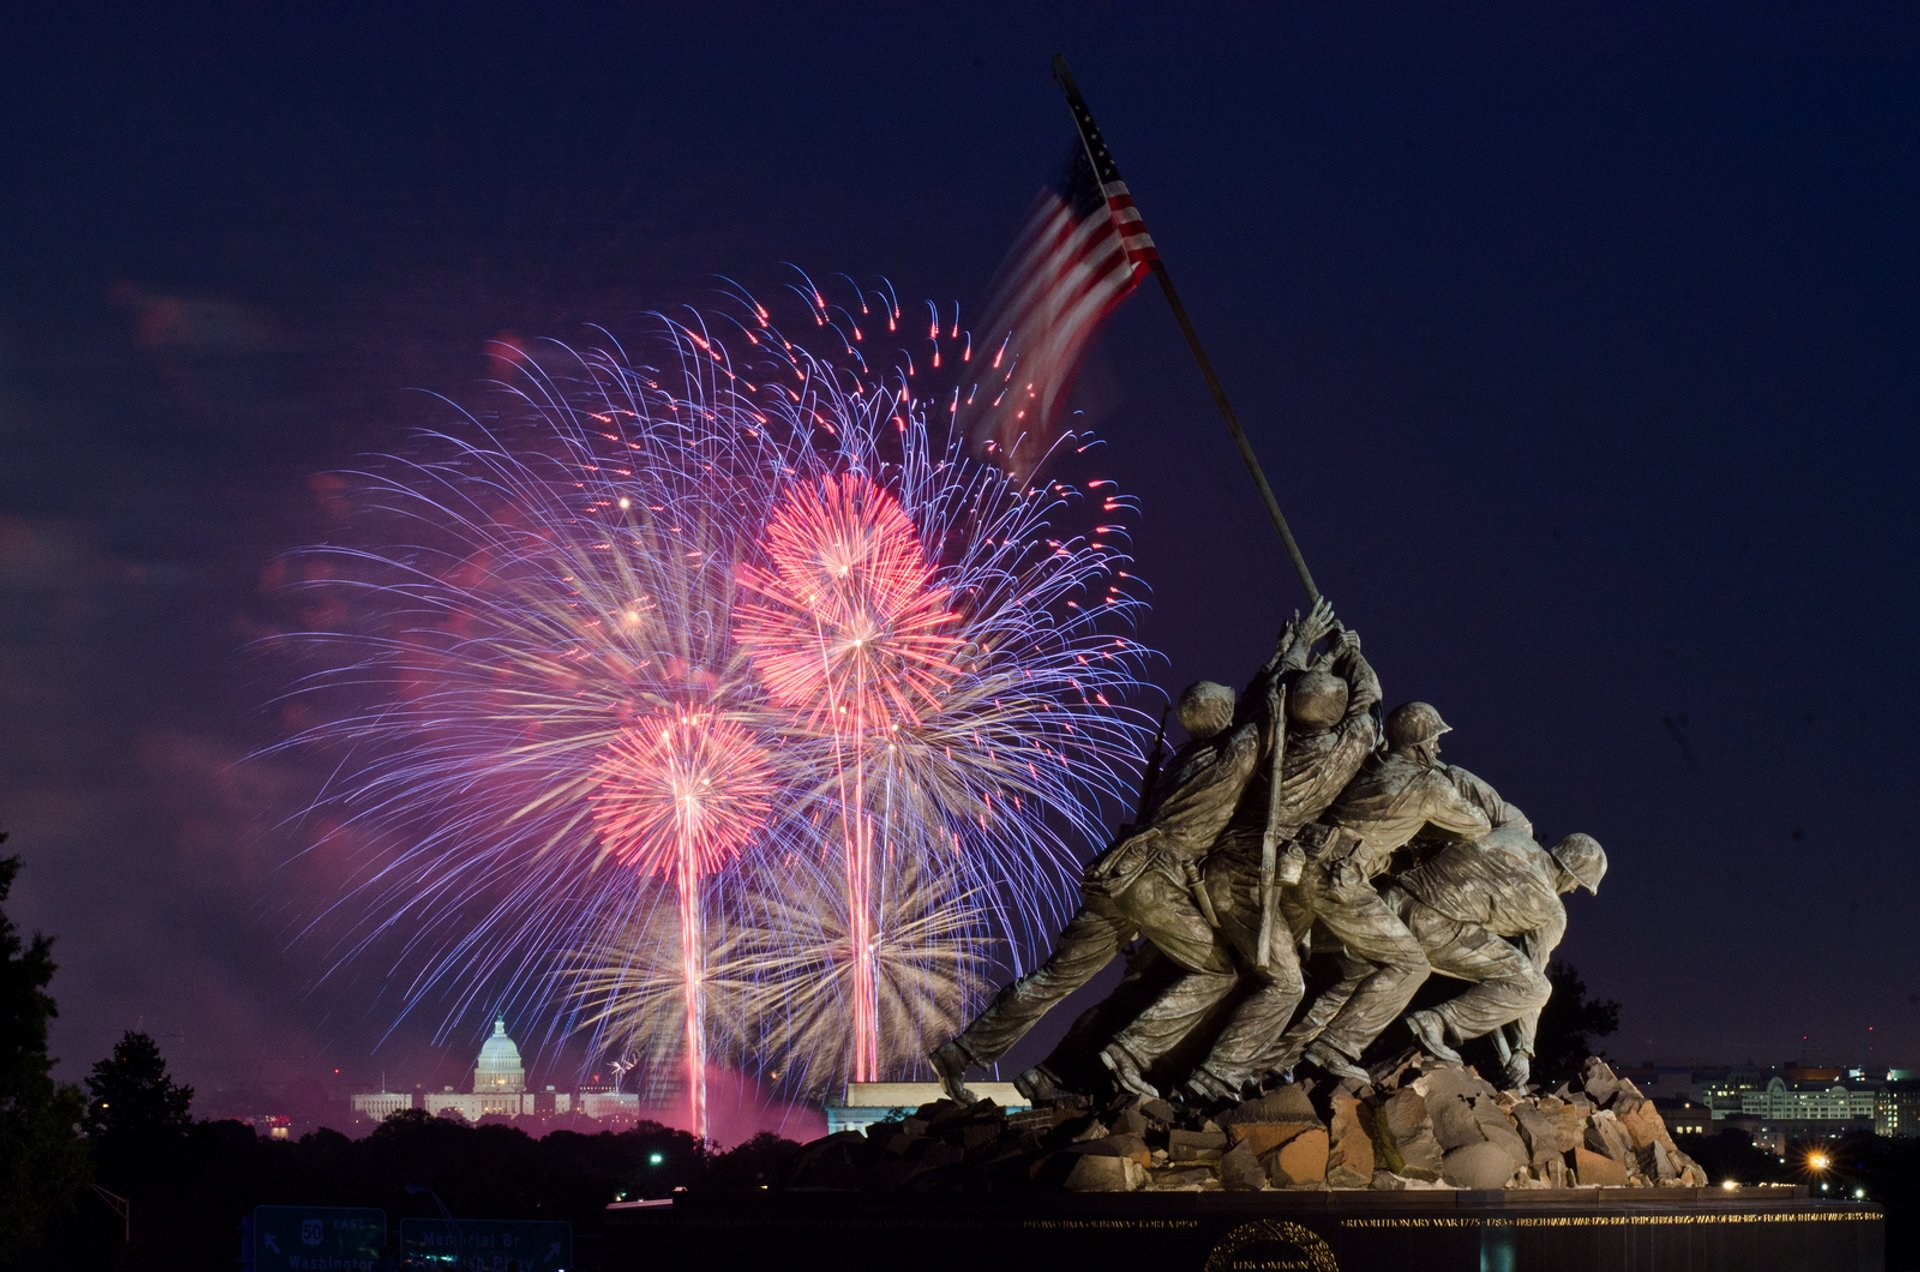 Best time to see 4th of July Concert, Parade & Fireworks in Washington, D.C. 2019